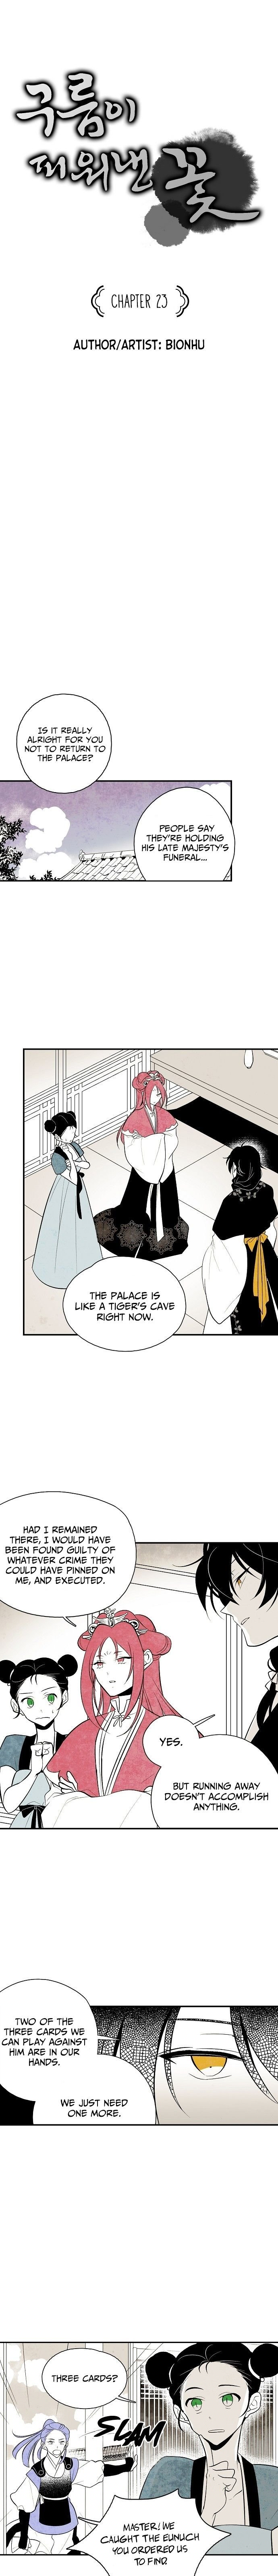 Manga The Flower That Was Bloomed By A Cloud - Chapter 23 Page 1